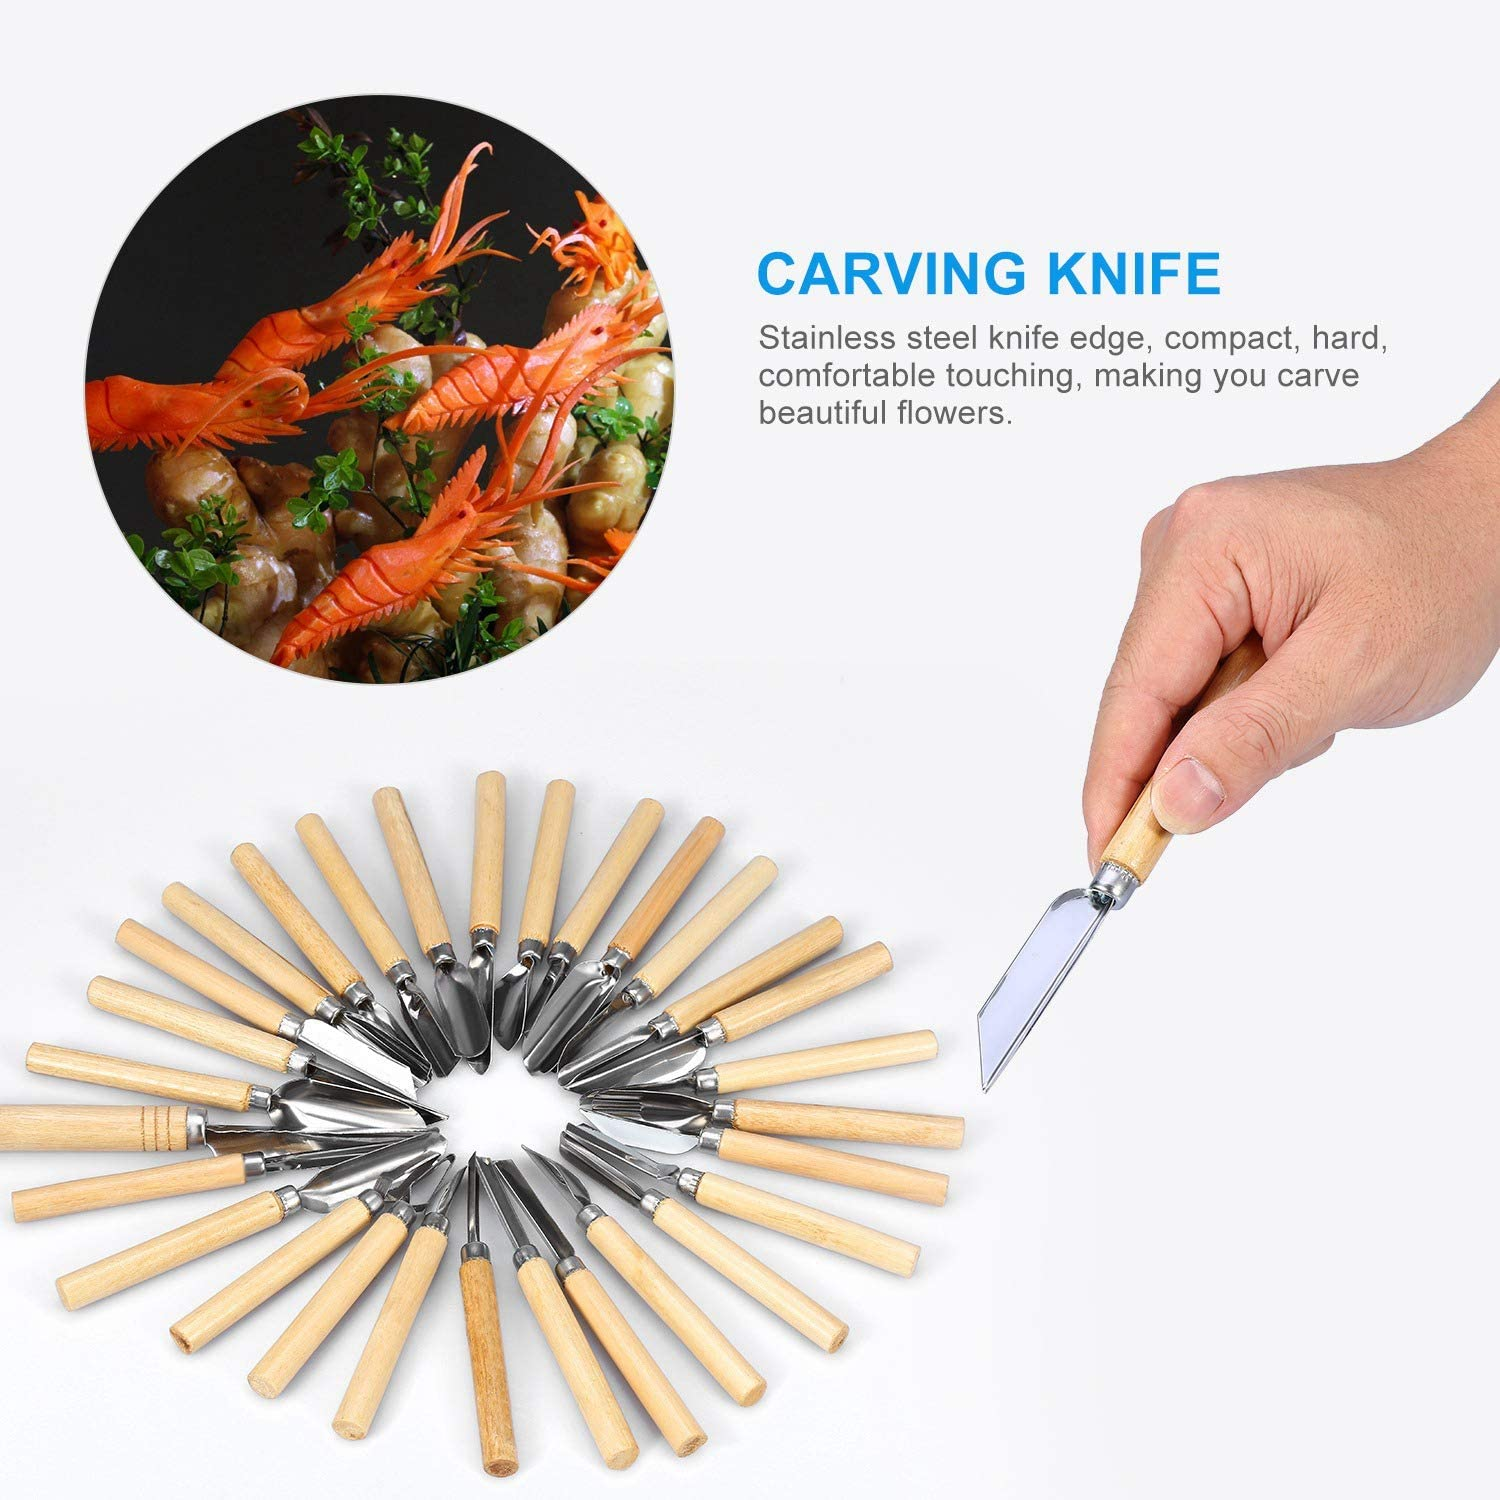 Kitchen Carving Tool, Carving Set, Carving Tool, Healthy fof Hote for Restaurant